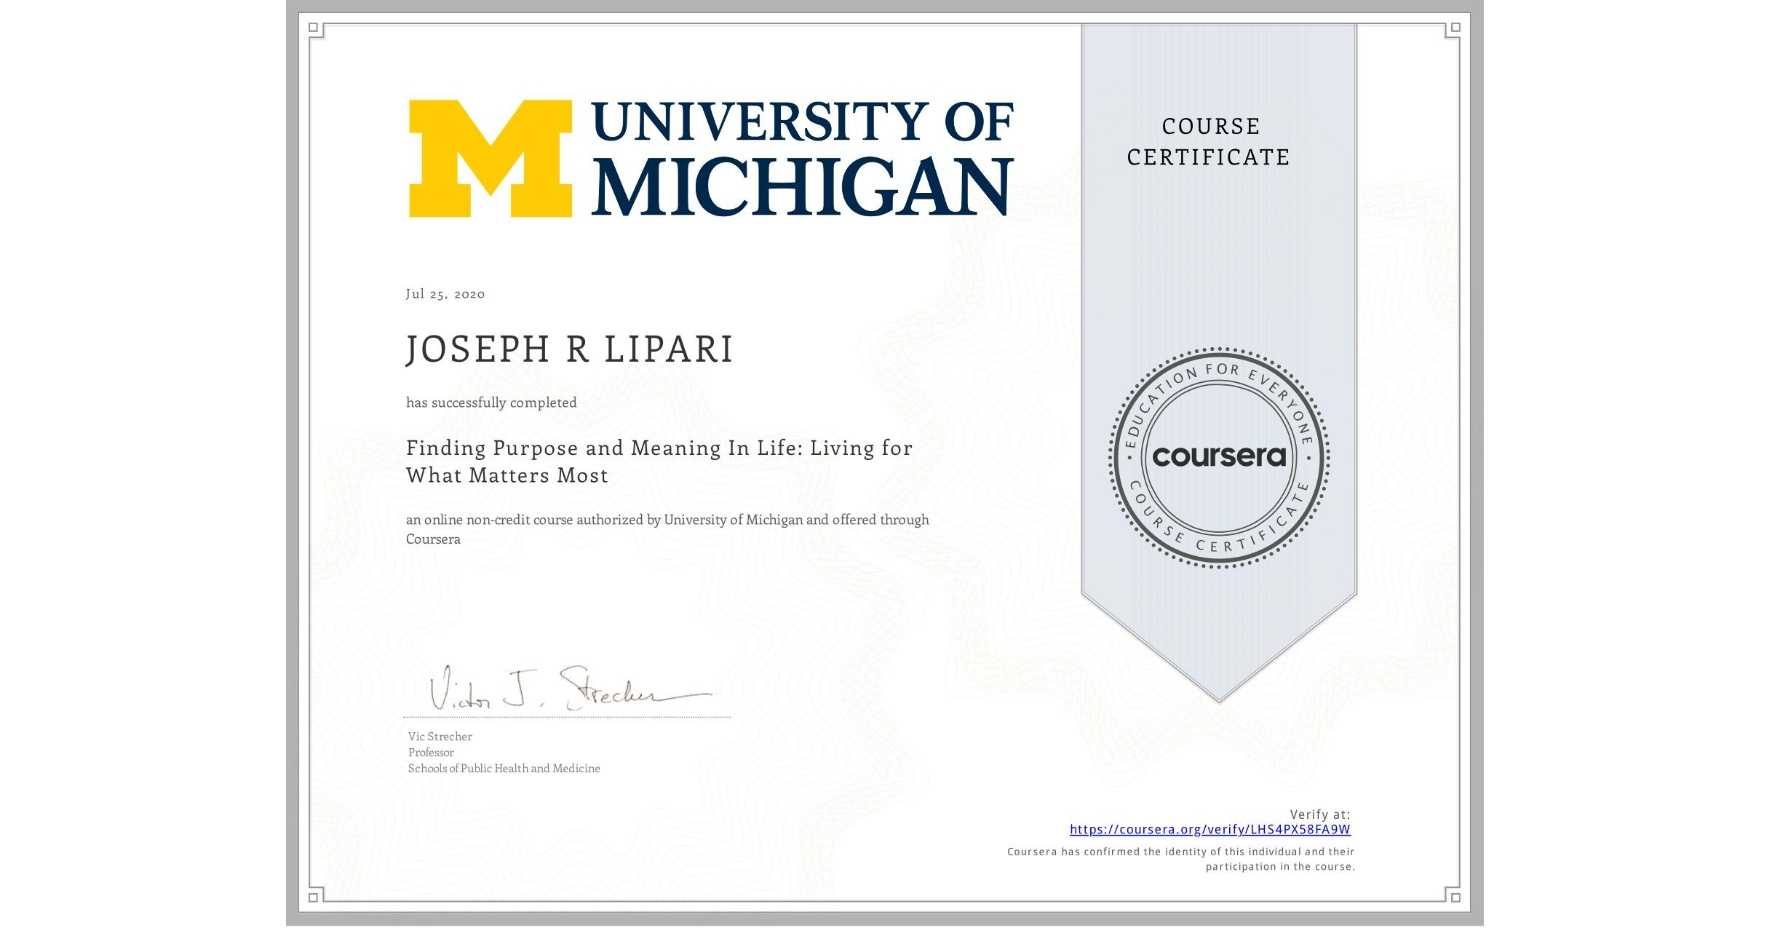 View certificate for JOSEPH R  LIPARI, Finding Purpose and Meaning In Life: Living for What Matters Most, an online non-credit course authorized by University of Michigan and offered through Coursera